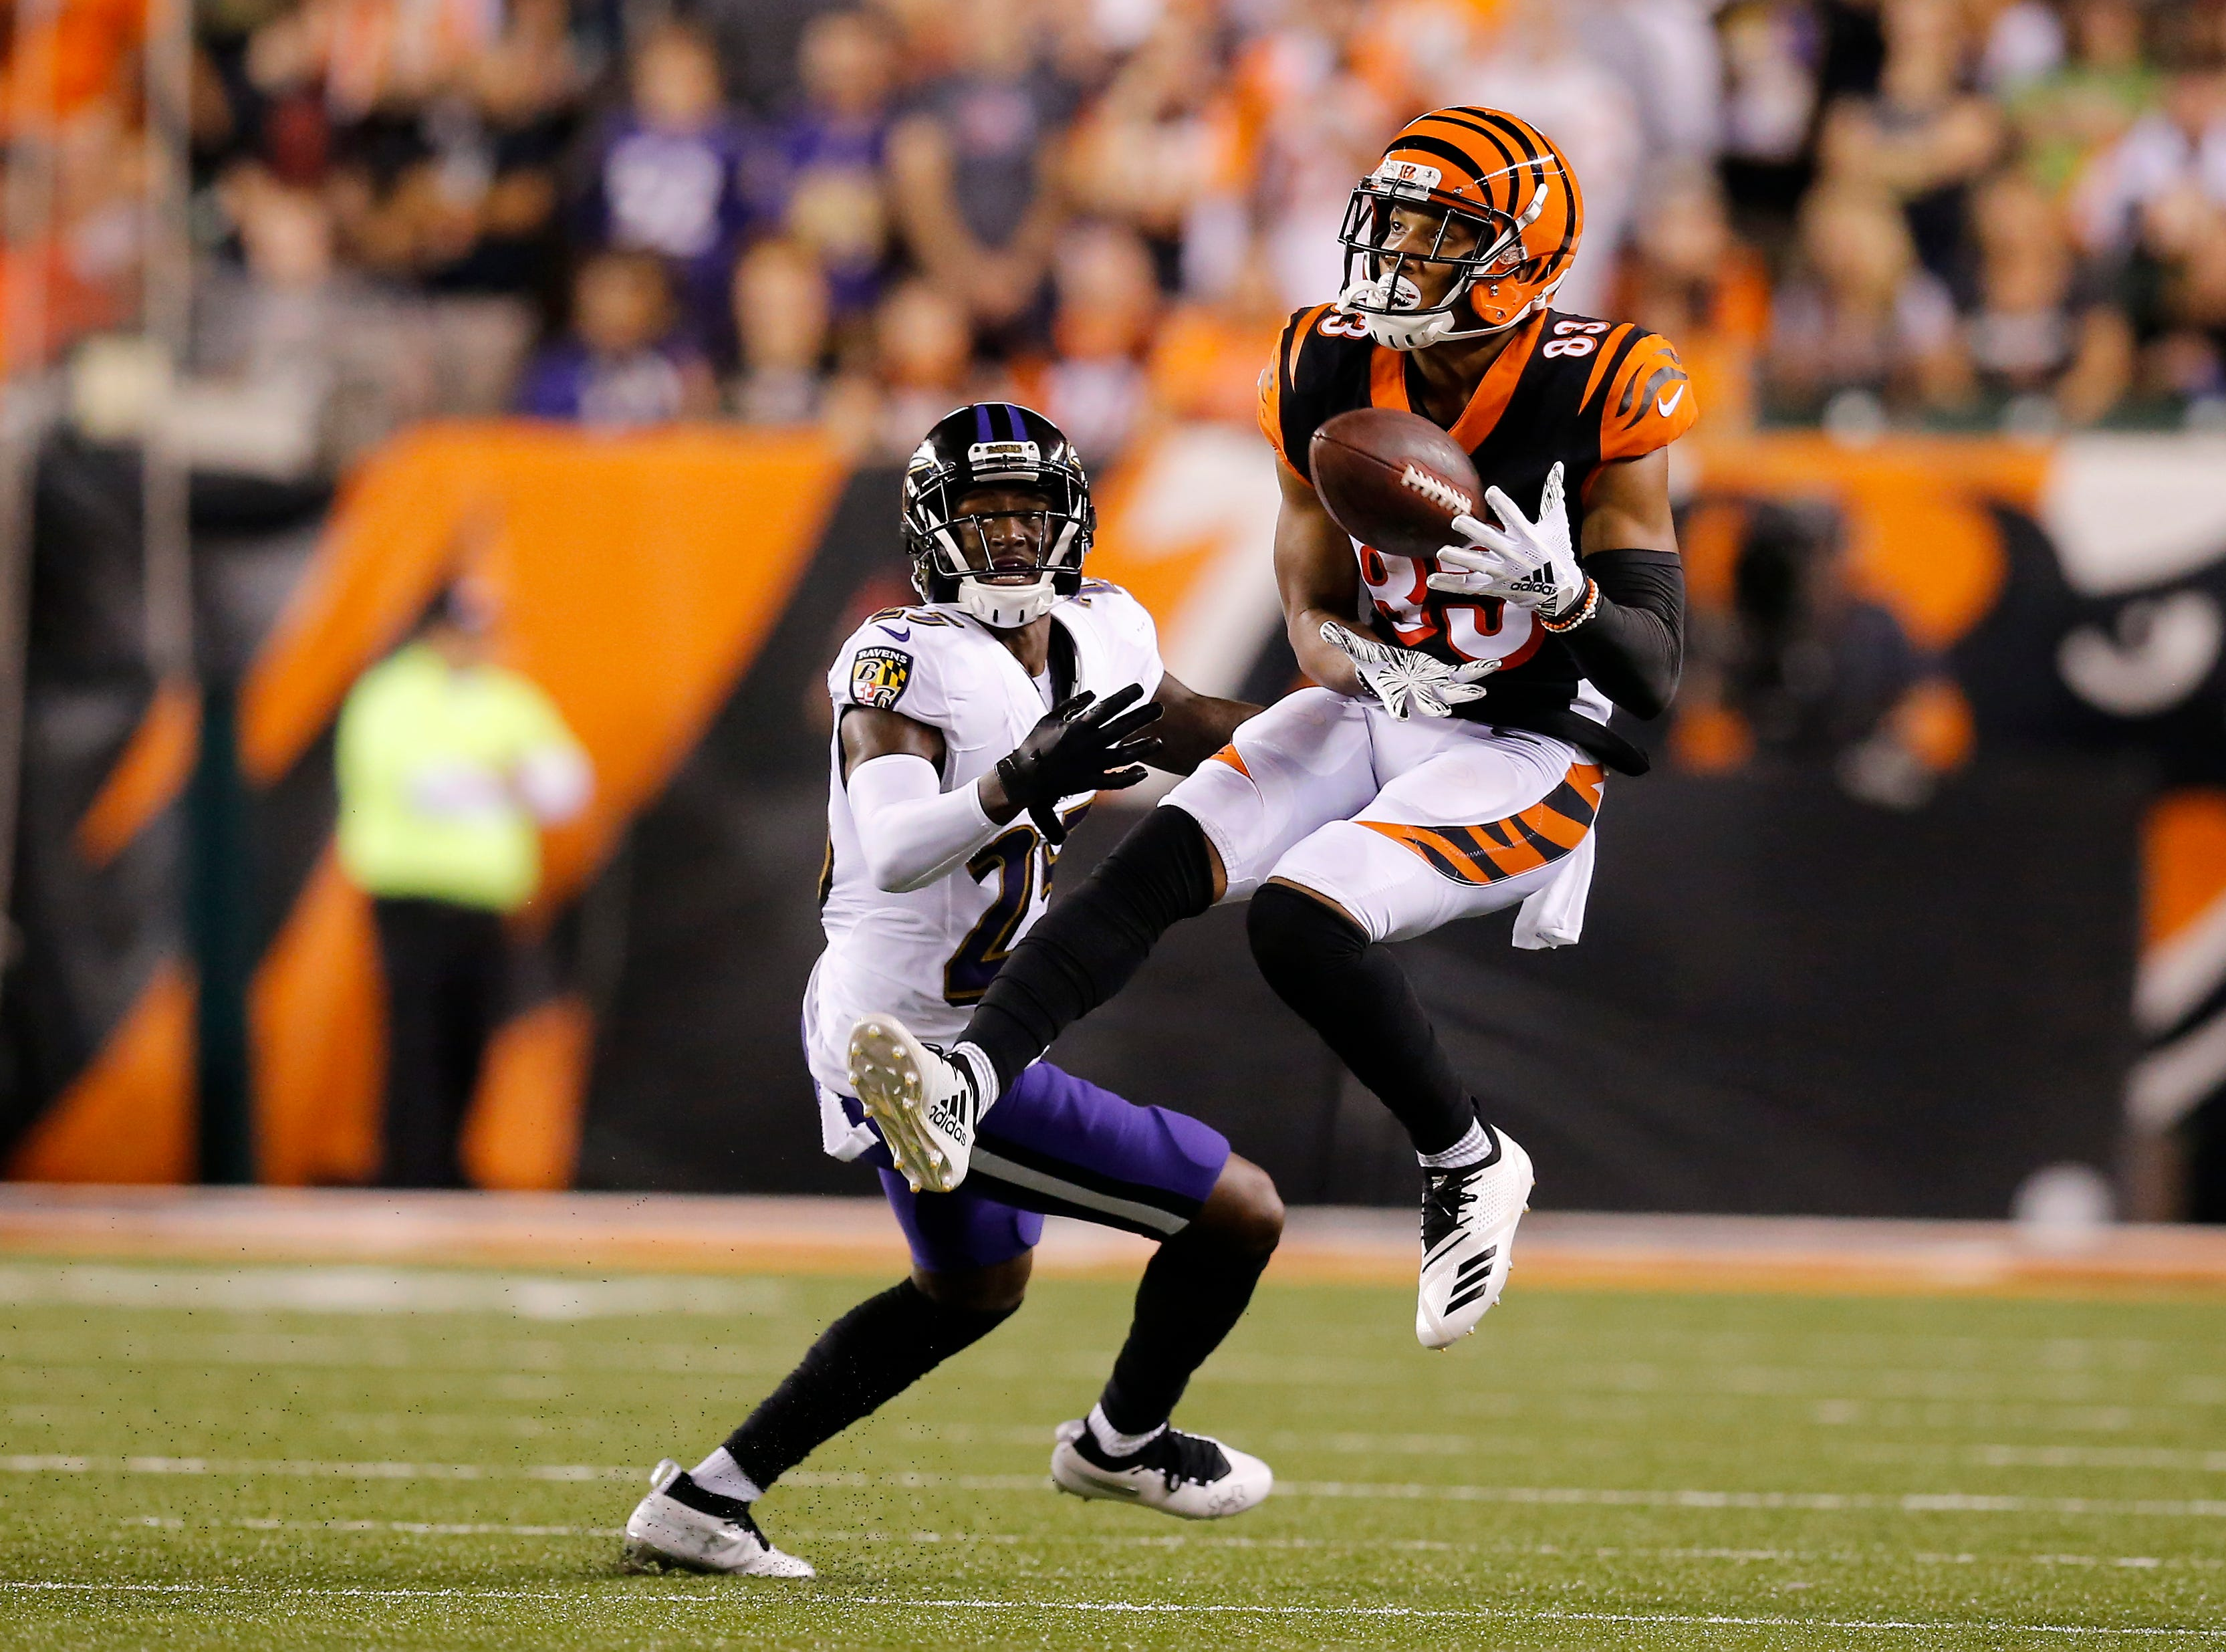 Cincinnati Bengals wide receiver Tyler Boyd (83) comes down with a catch ahead of Baltimore Ravens cornerback Tavon Young (25) in the second quarter of the NFL Week 2 game between the Cincinnati Bengals and the Baltimore Ravens at Paul Brown Stadium in downtown Cincinnati on Thursday, Sept. 13, 2018. The Bengals led 28-14 at halftime.